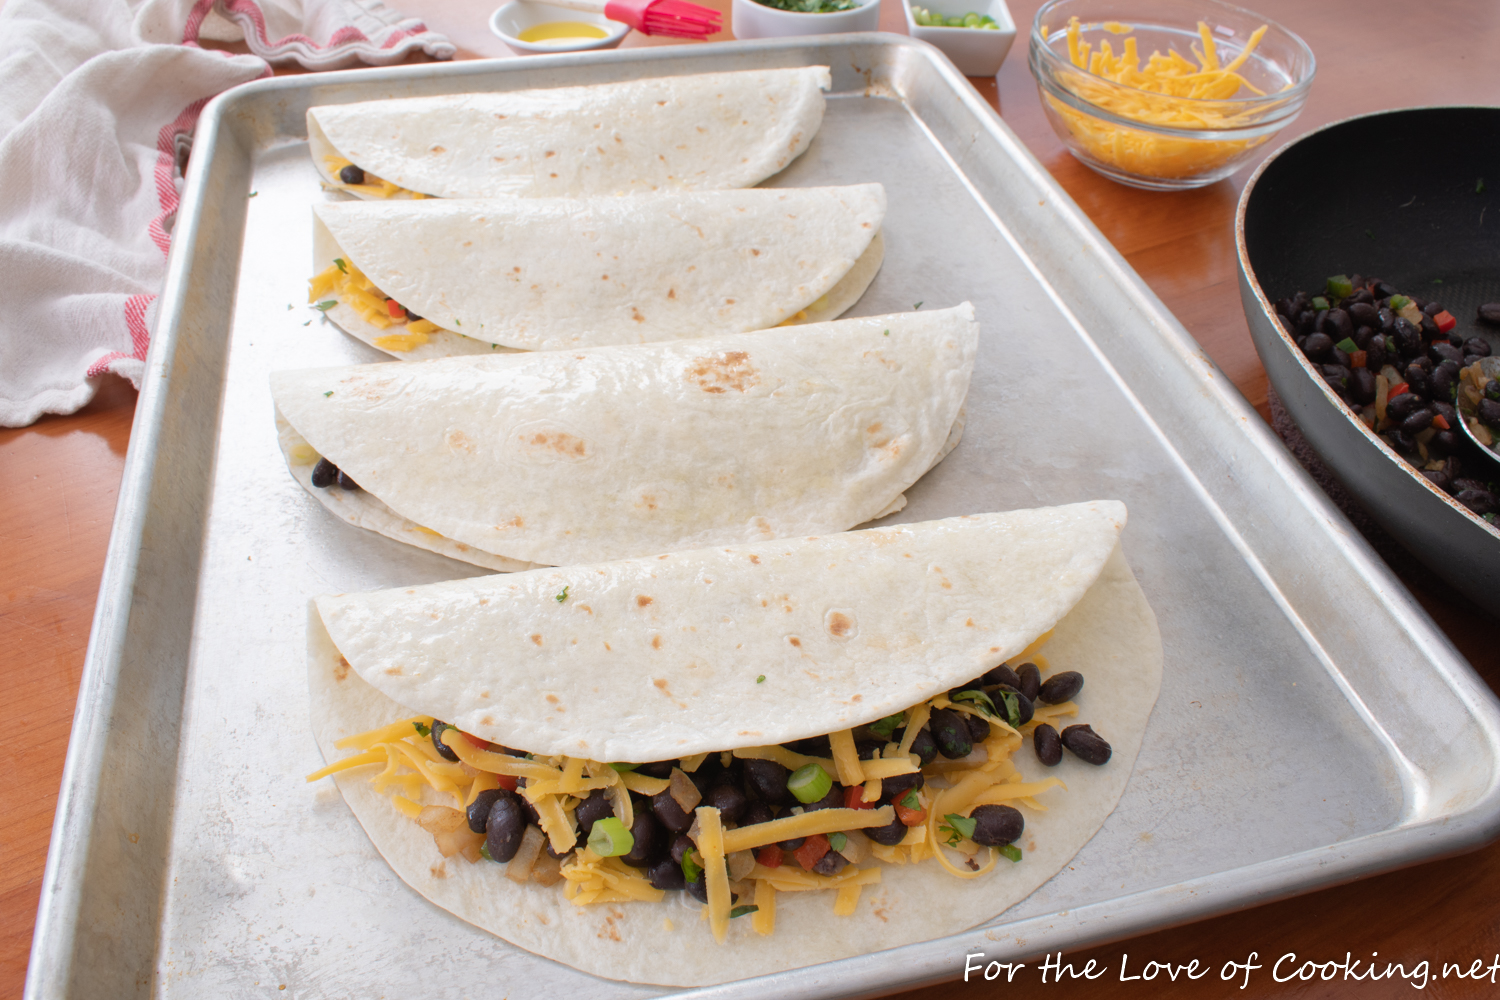 Baked Black Bean and Cheese Quesadillas